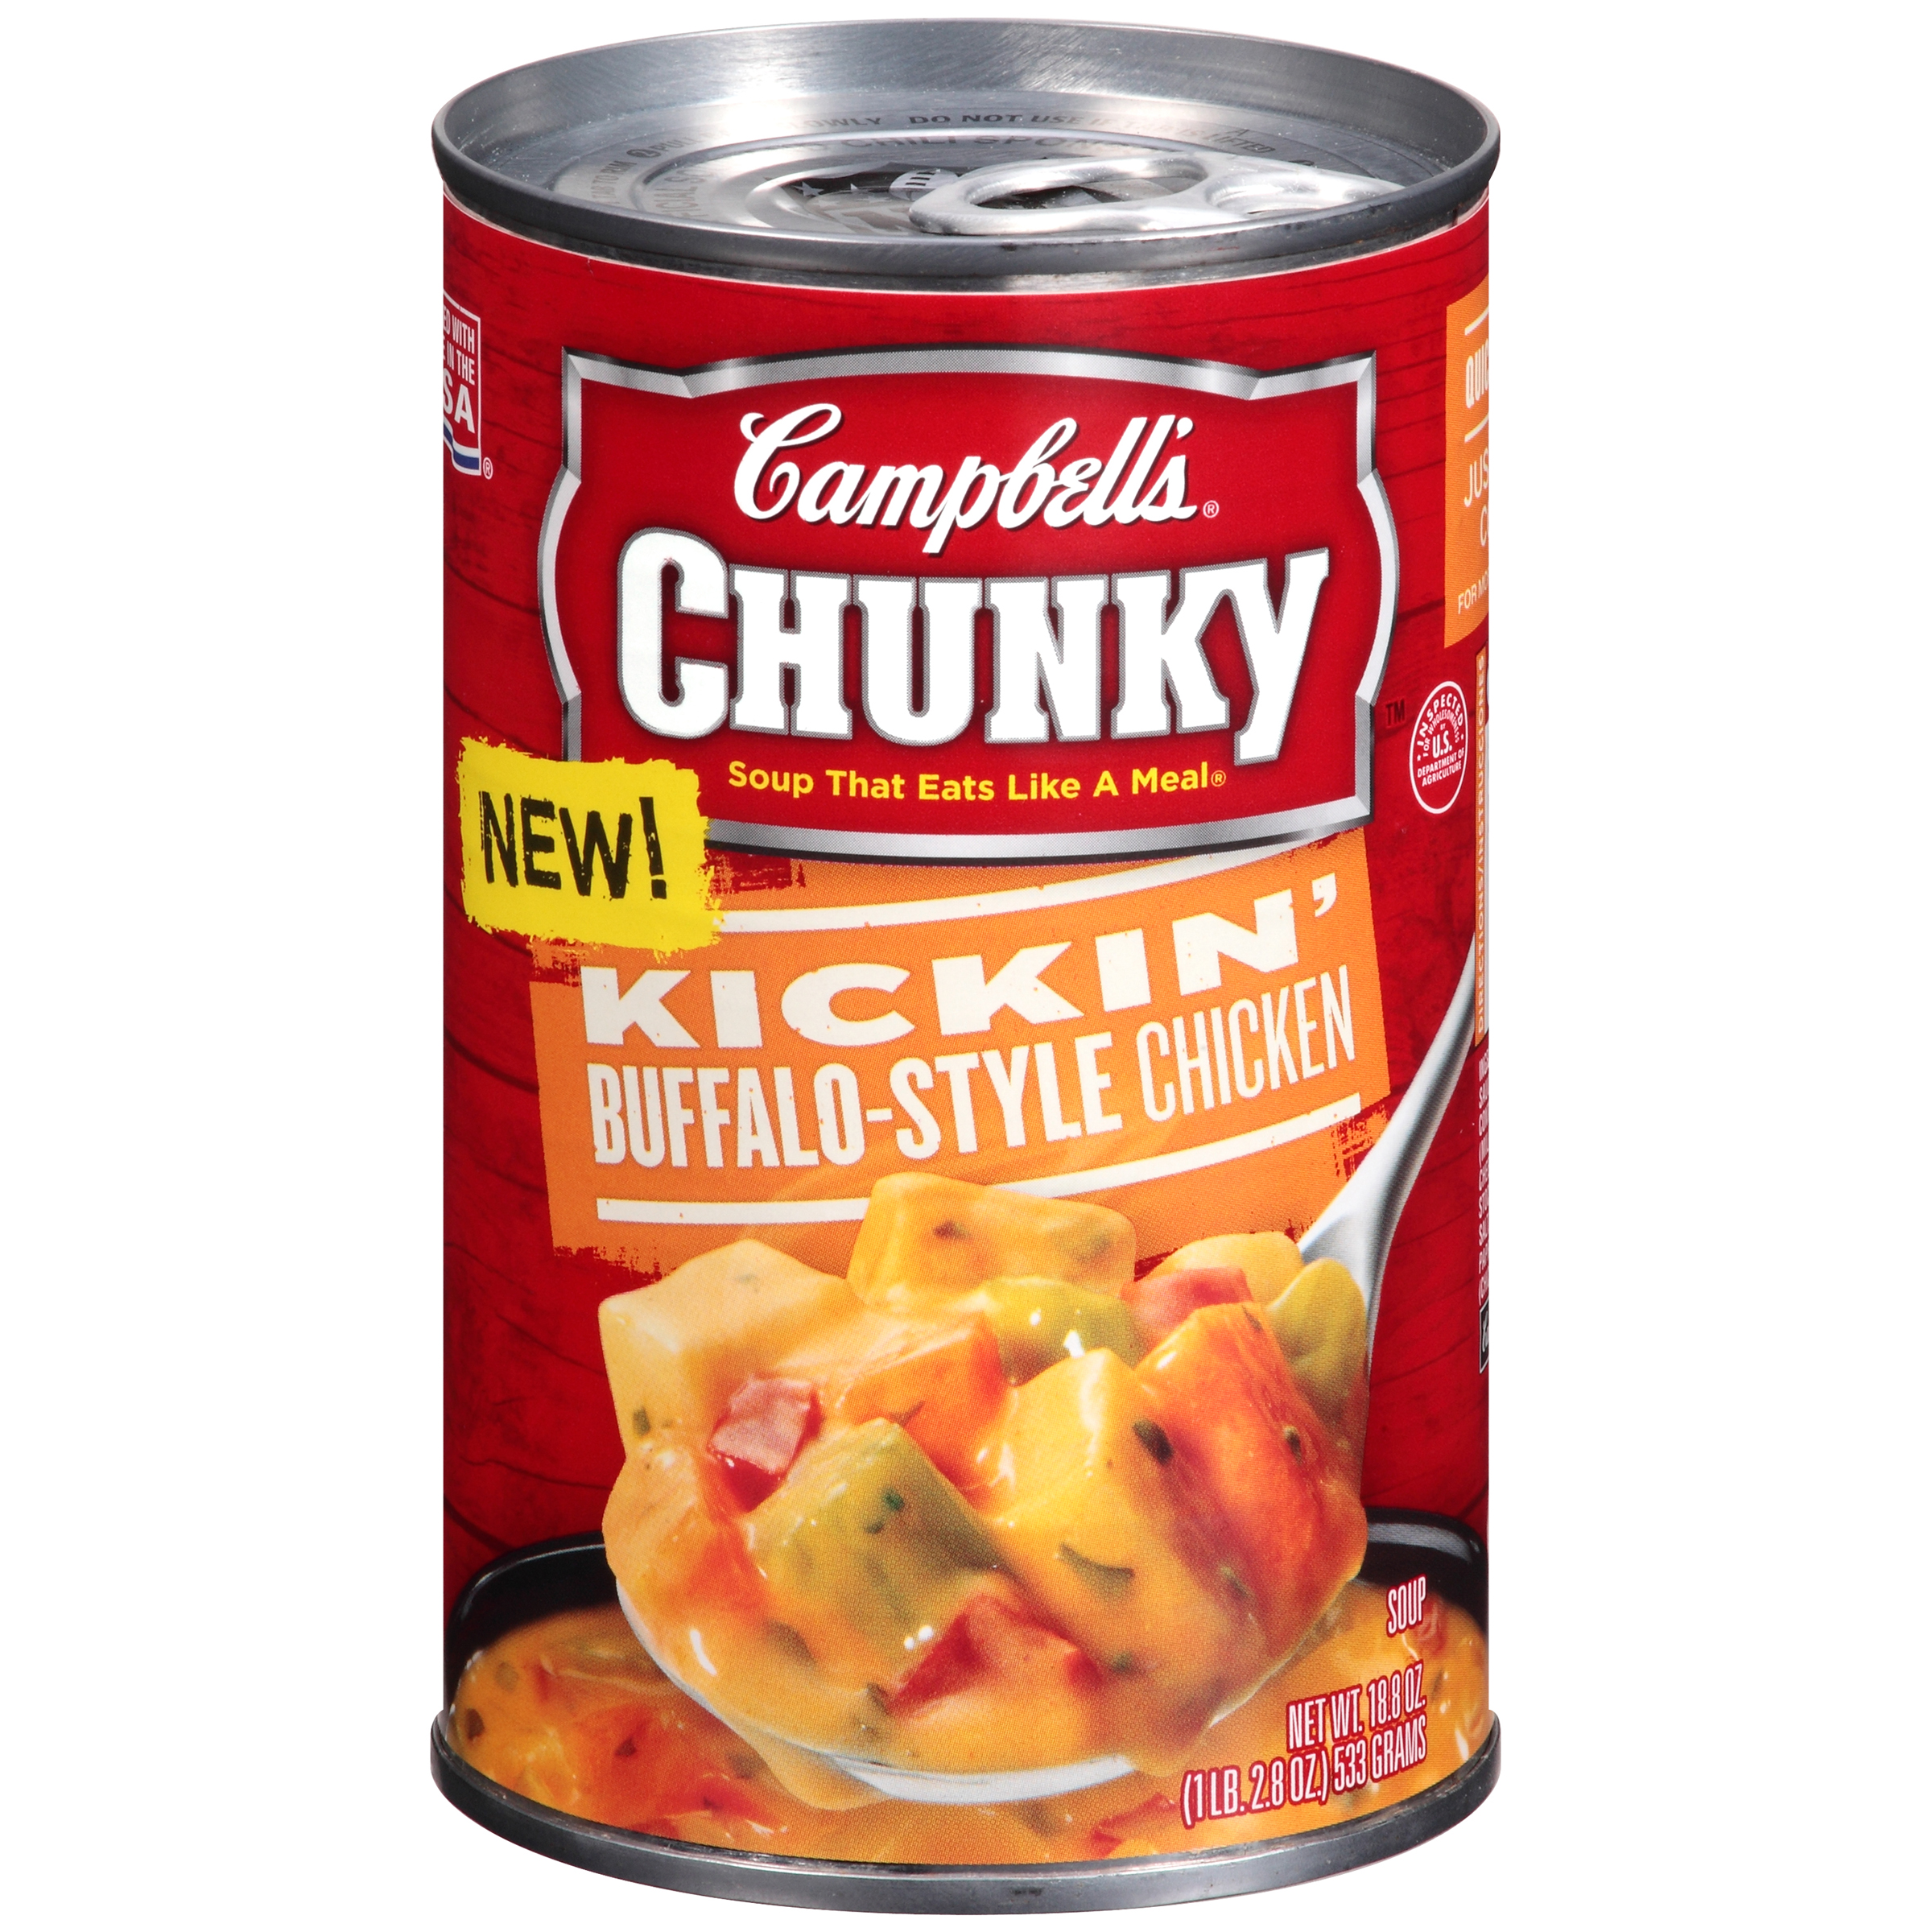 Campbell's Chunky Kickin' Buffalo-Style Chicken Soup 18.8oz